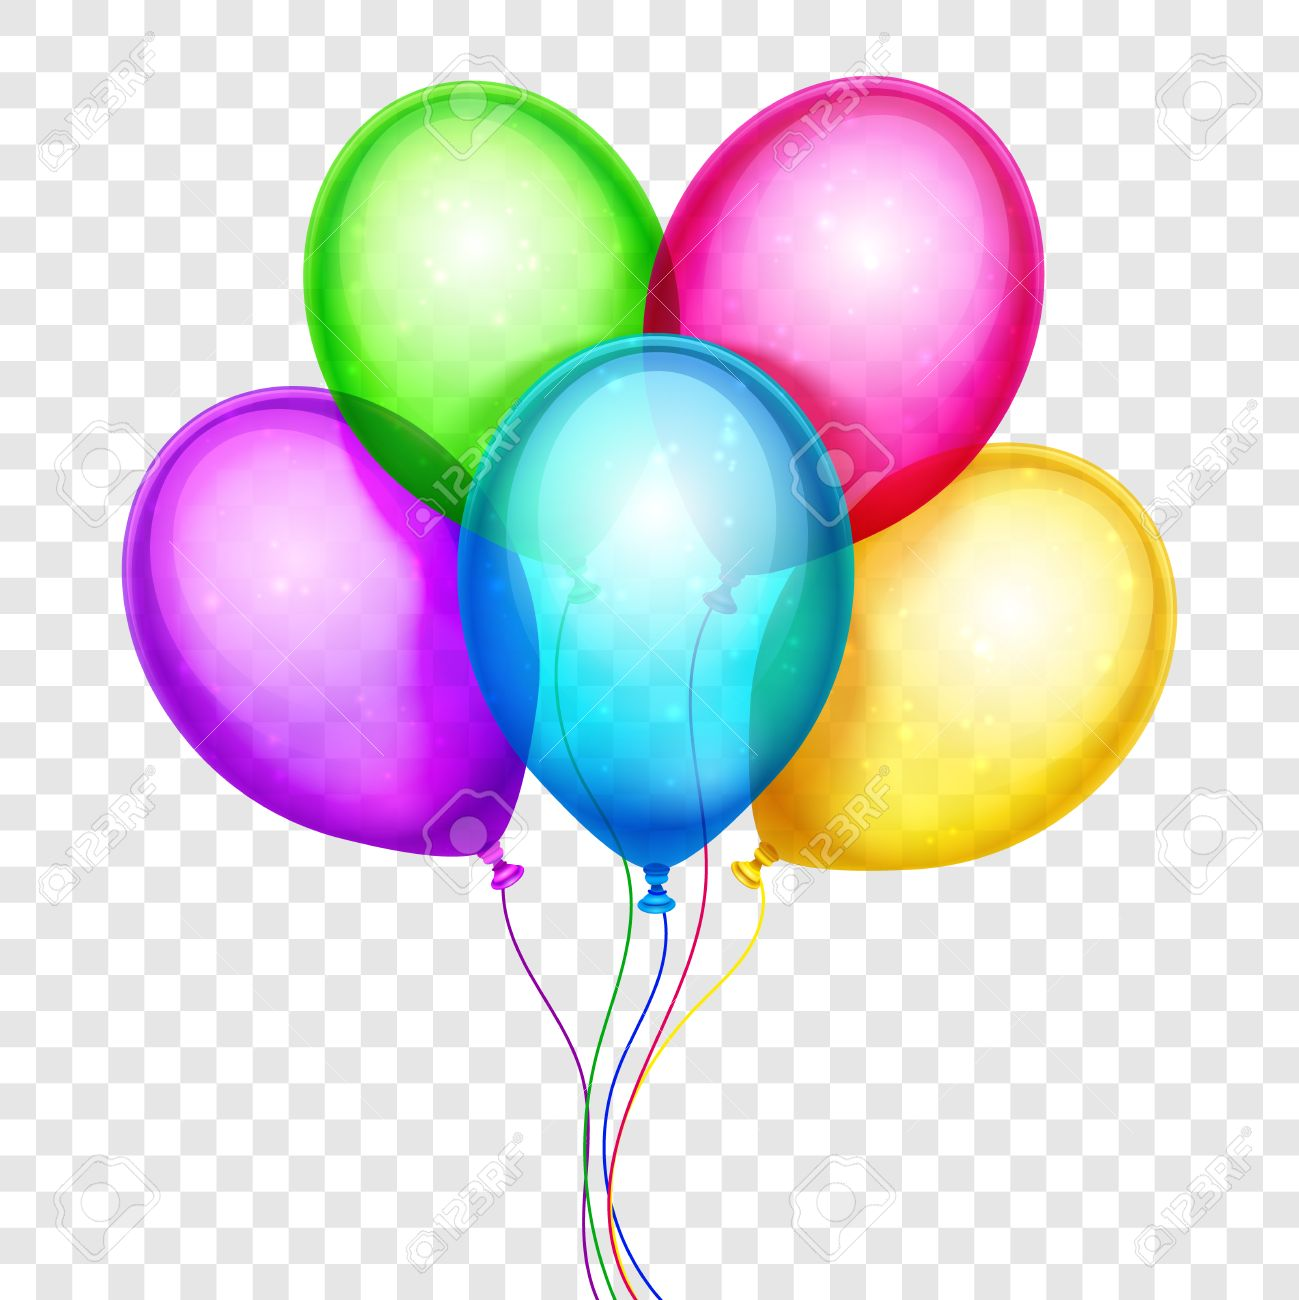 Exceptional Birthday Balloon Images Part - 11: Vector - Vector Colorful Balloons, Birthday Decoration Isolated On  Transparent Background. Birthday Balloon Color, Helium Balloons Flying  Illustration